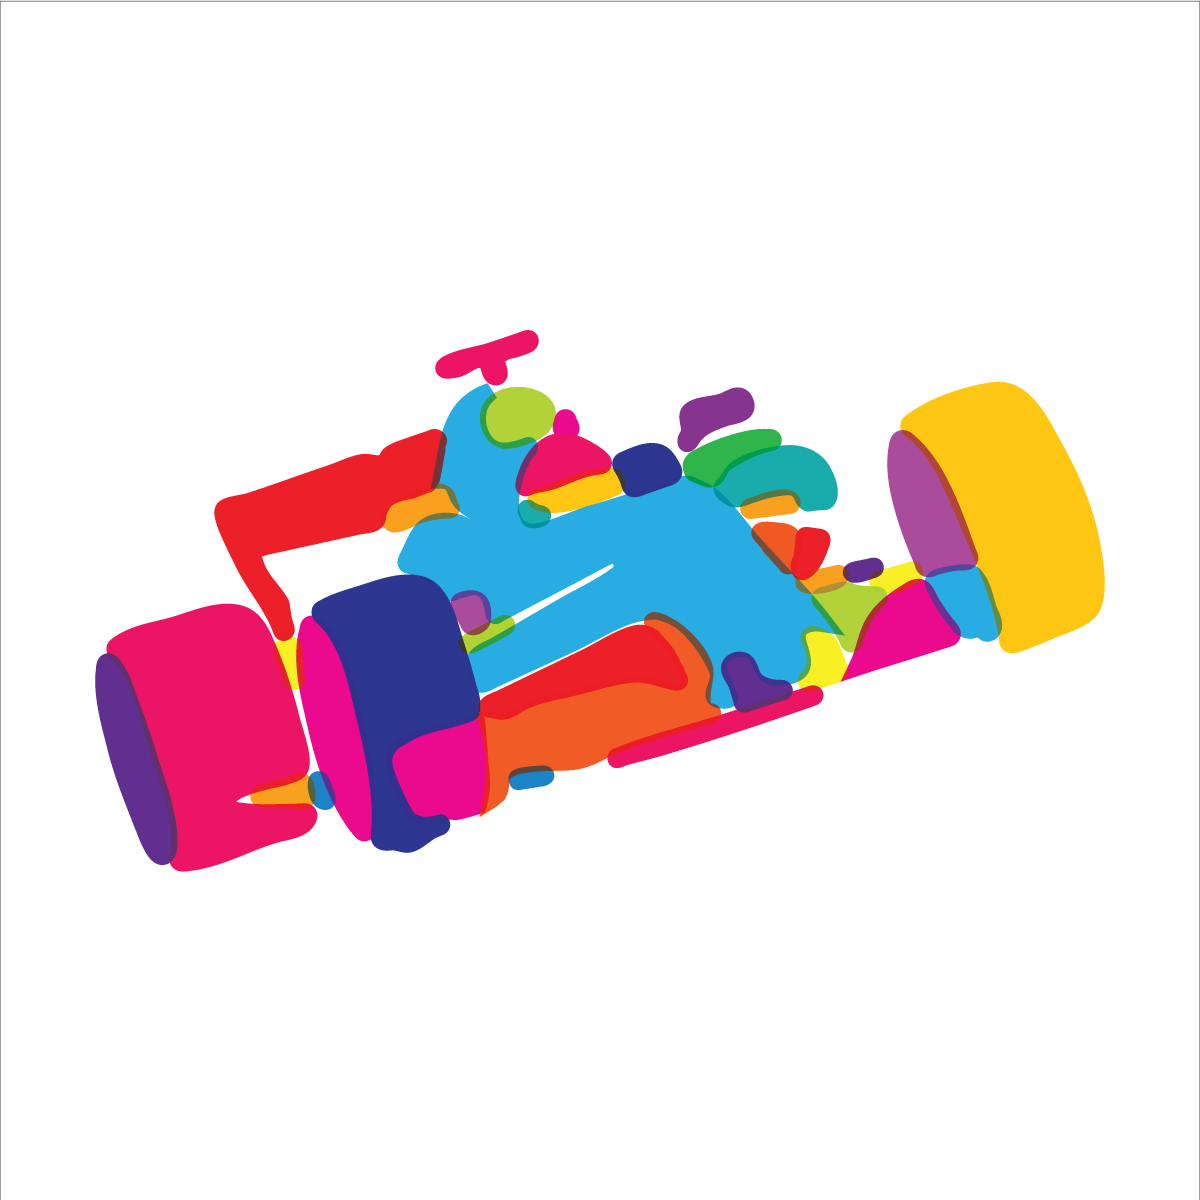 Image of F1 racer